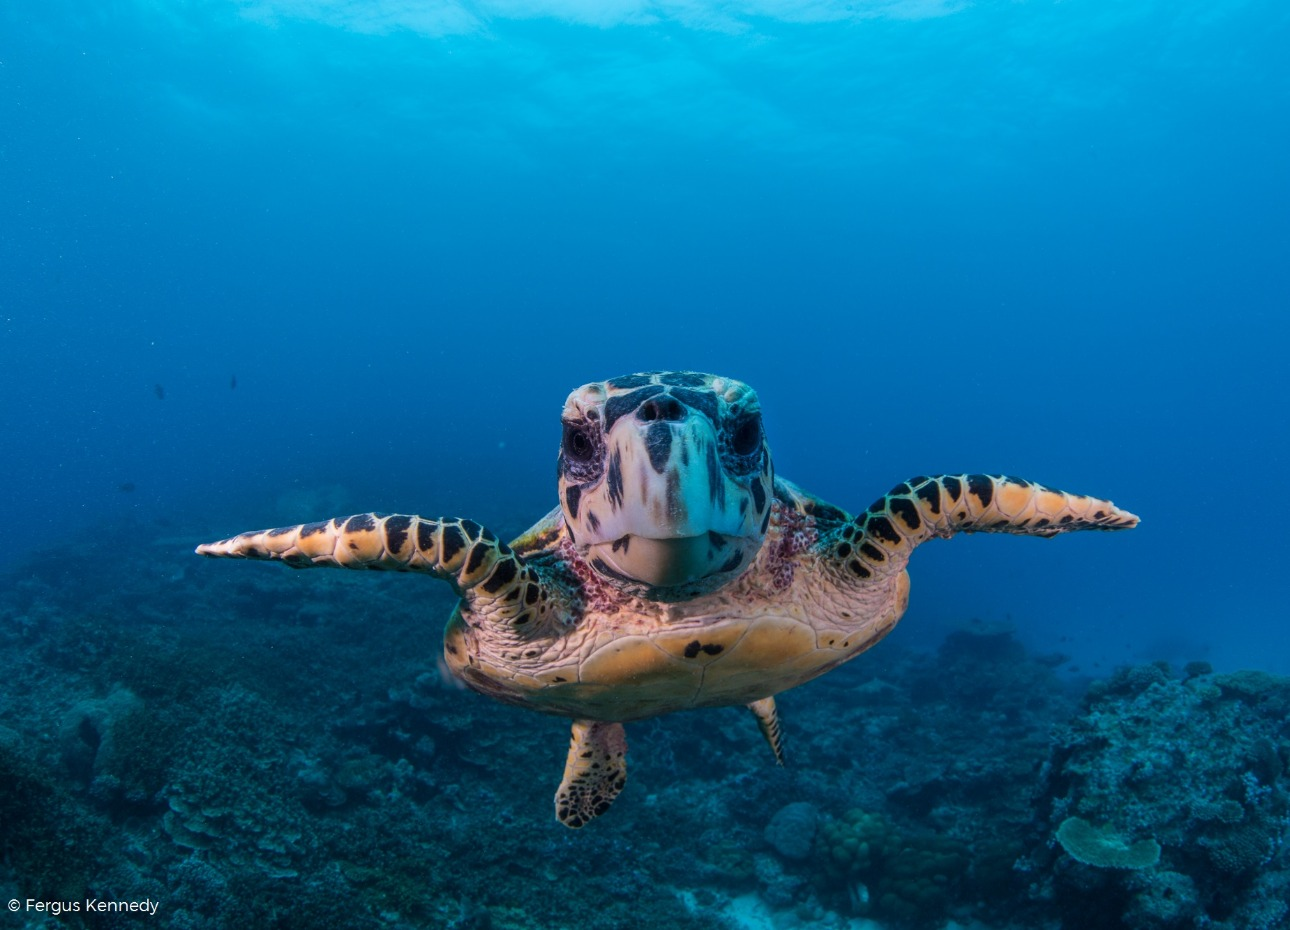 Turtle swimming through the Indian Ocean in the Maldives image, credit to Fergus Kennedy